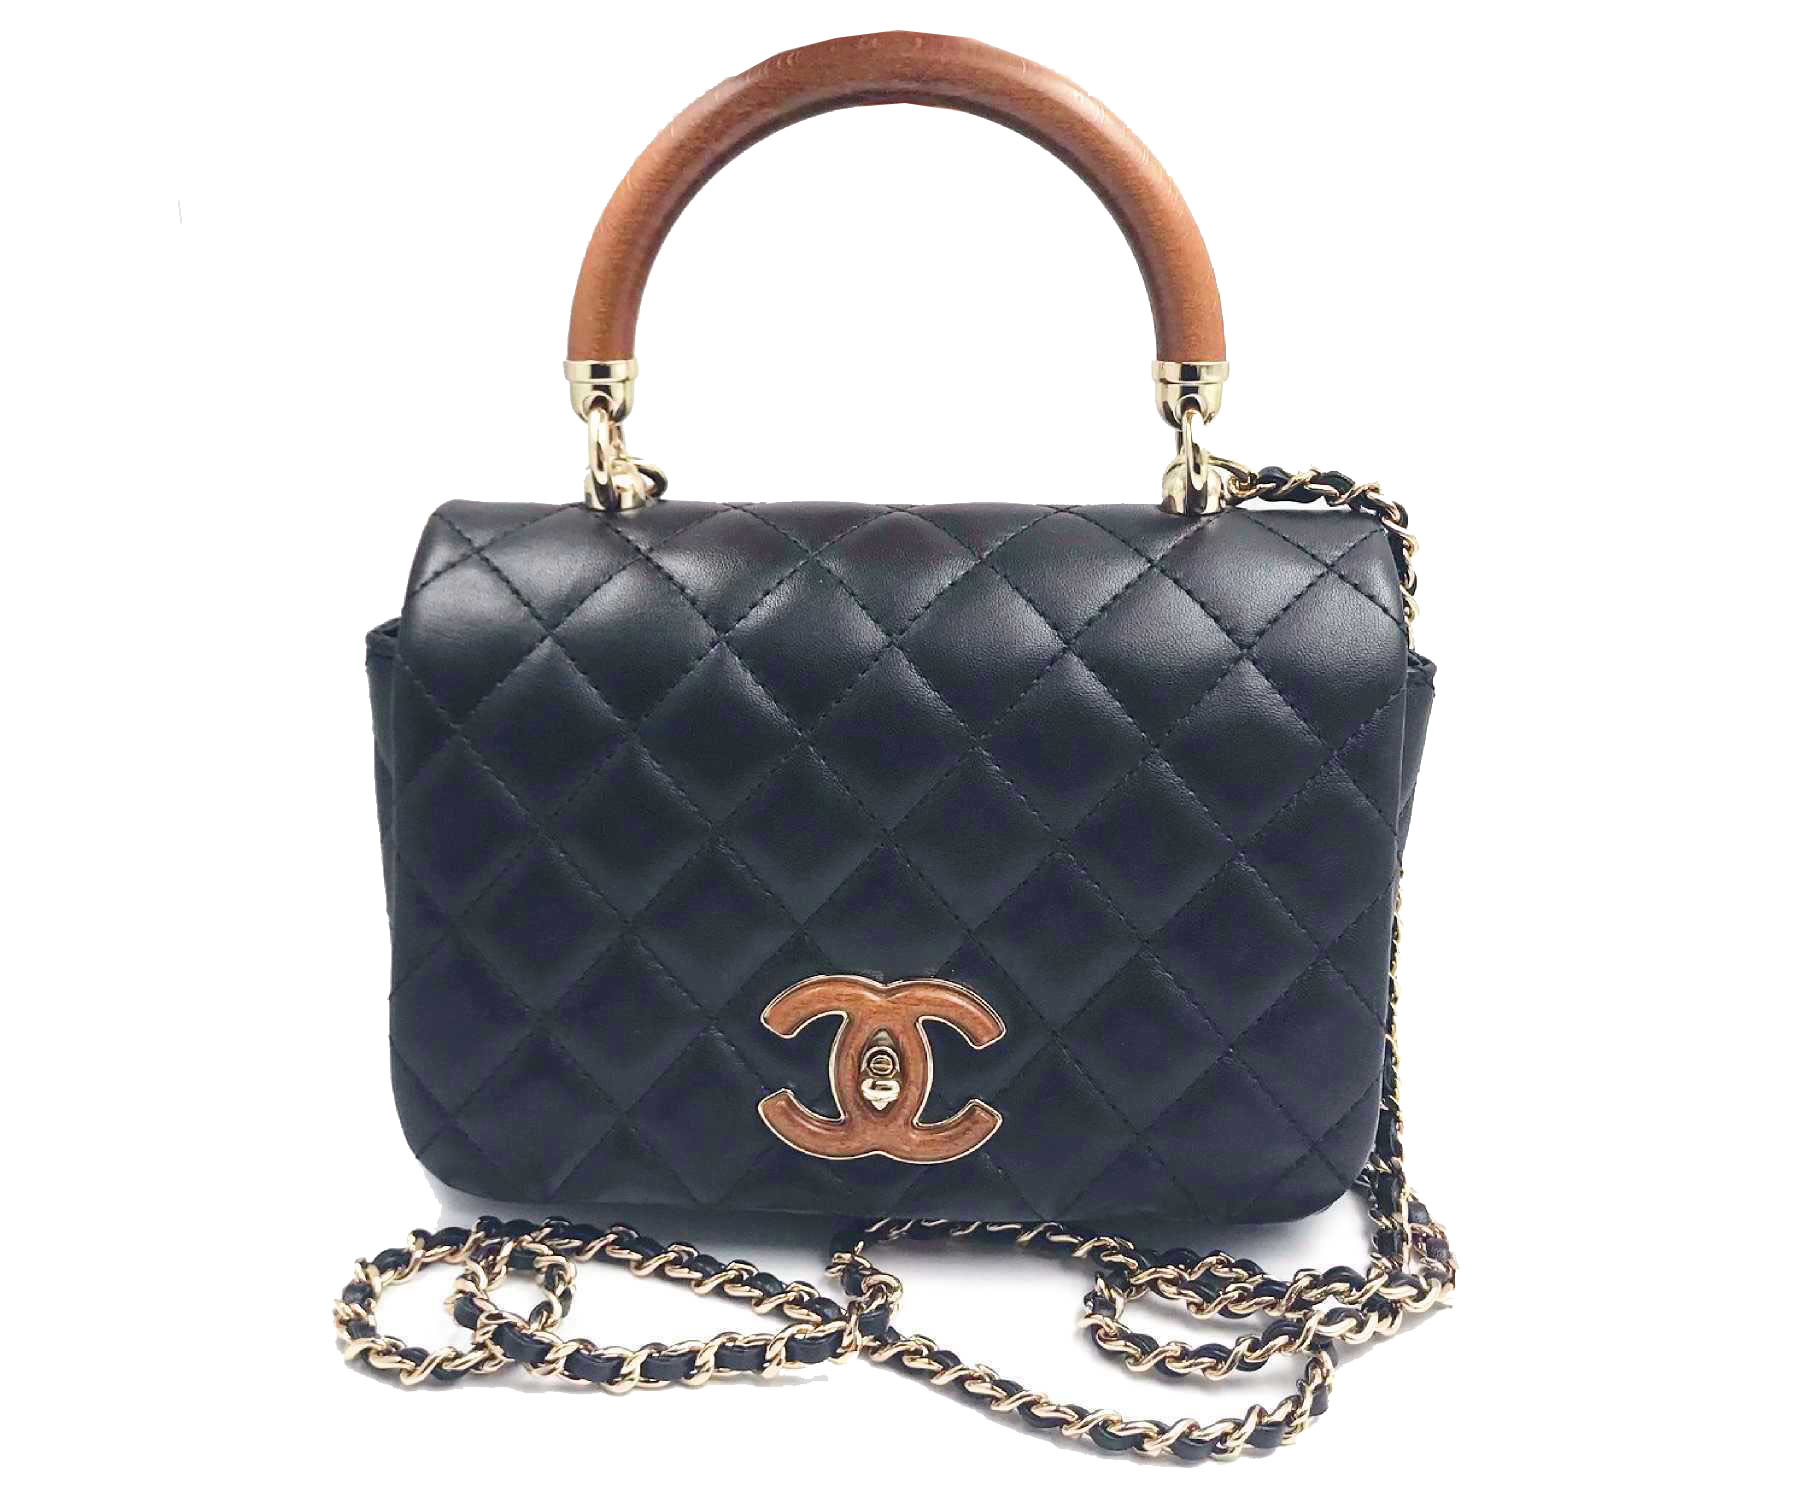 Chanel Brand New Wood Coco Handle Leather Cross Body